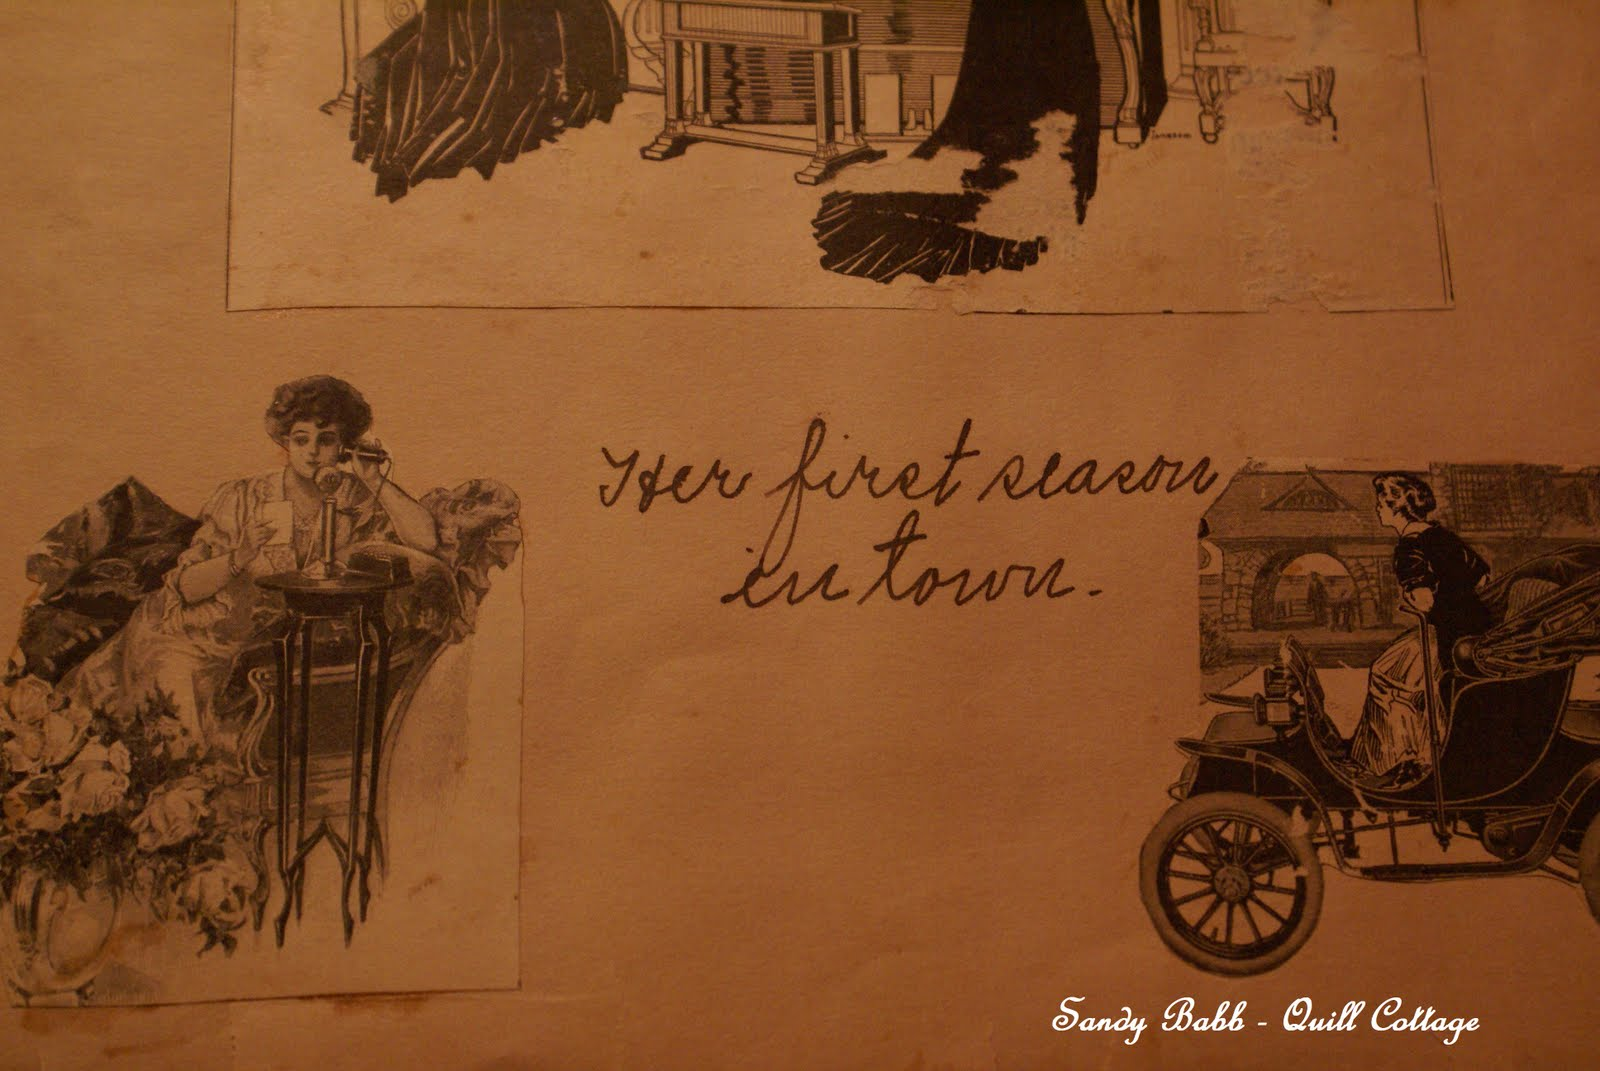 Quill Cottage: SCRAPBOOK OF A YOUNG VICTORIAN GIRL'S DREAMS...